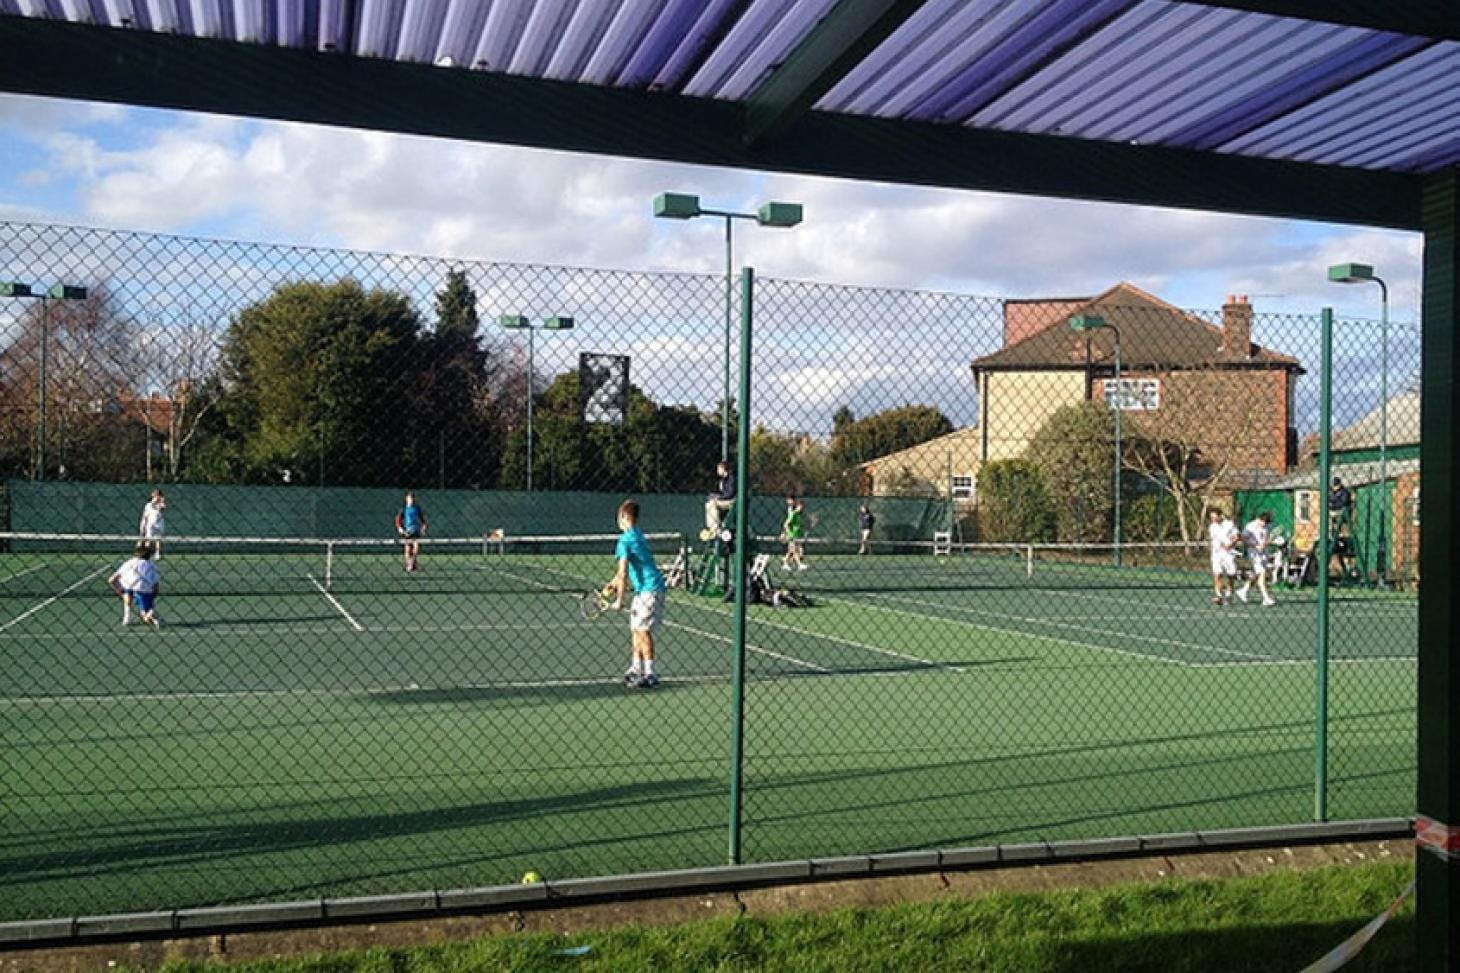 Wilton Lawn Tennis Club Outdoor | Hard (macadam) tennis court